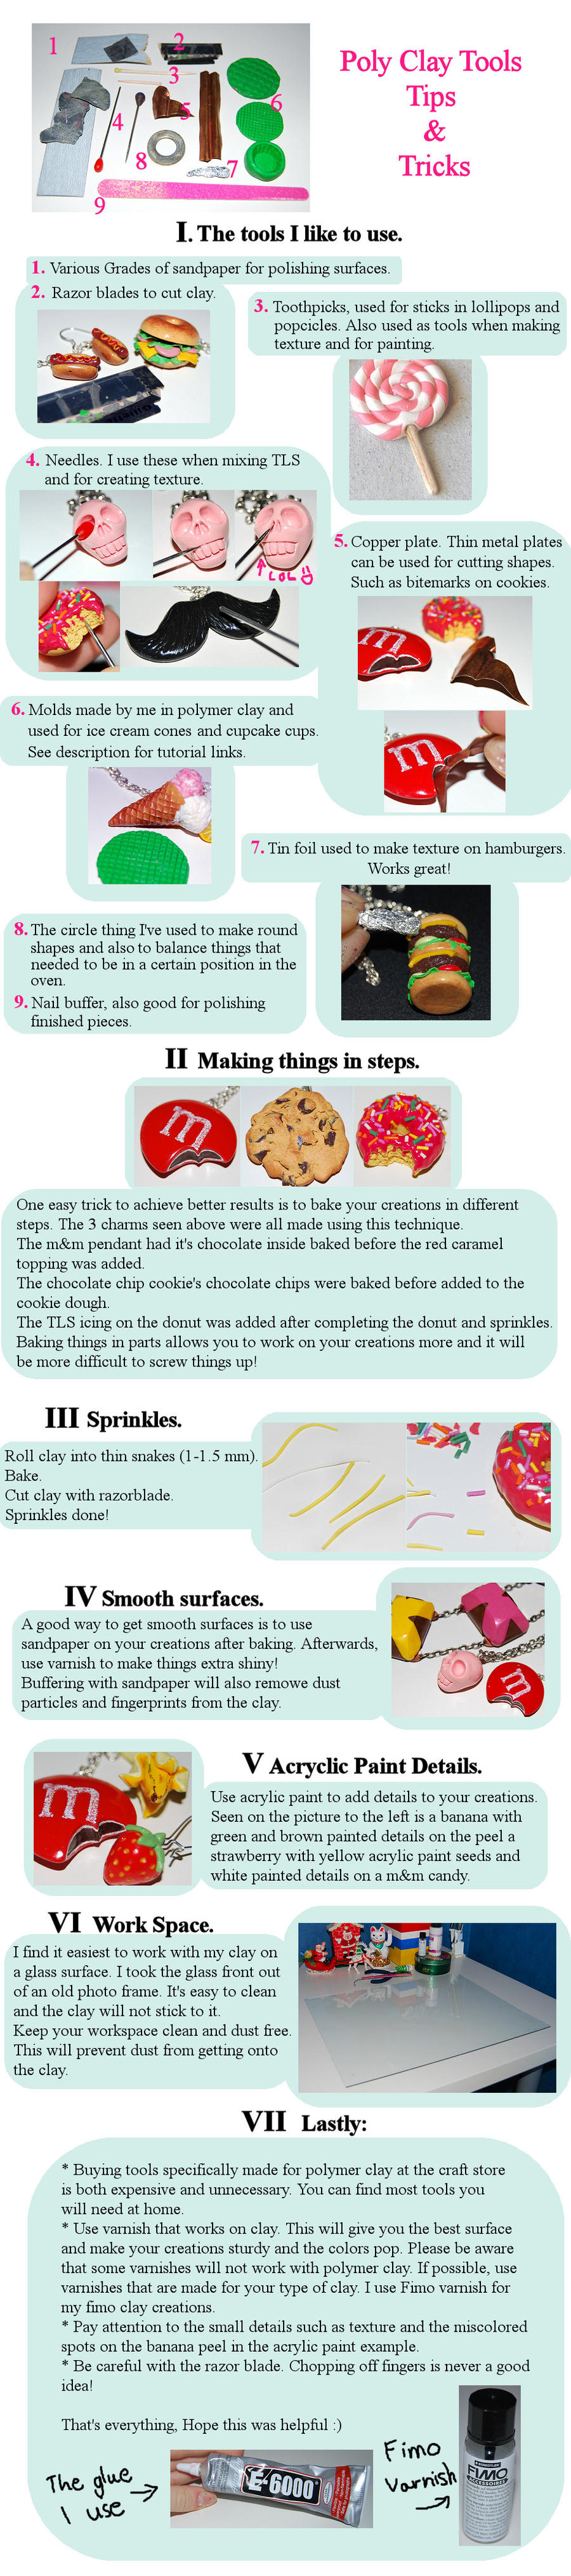 Polymer Clay Tips and Tricks by Madizzo